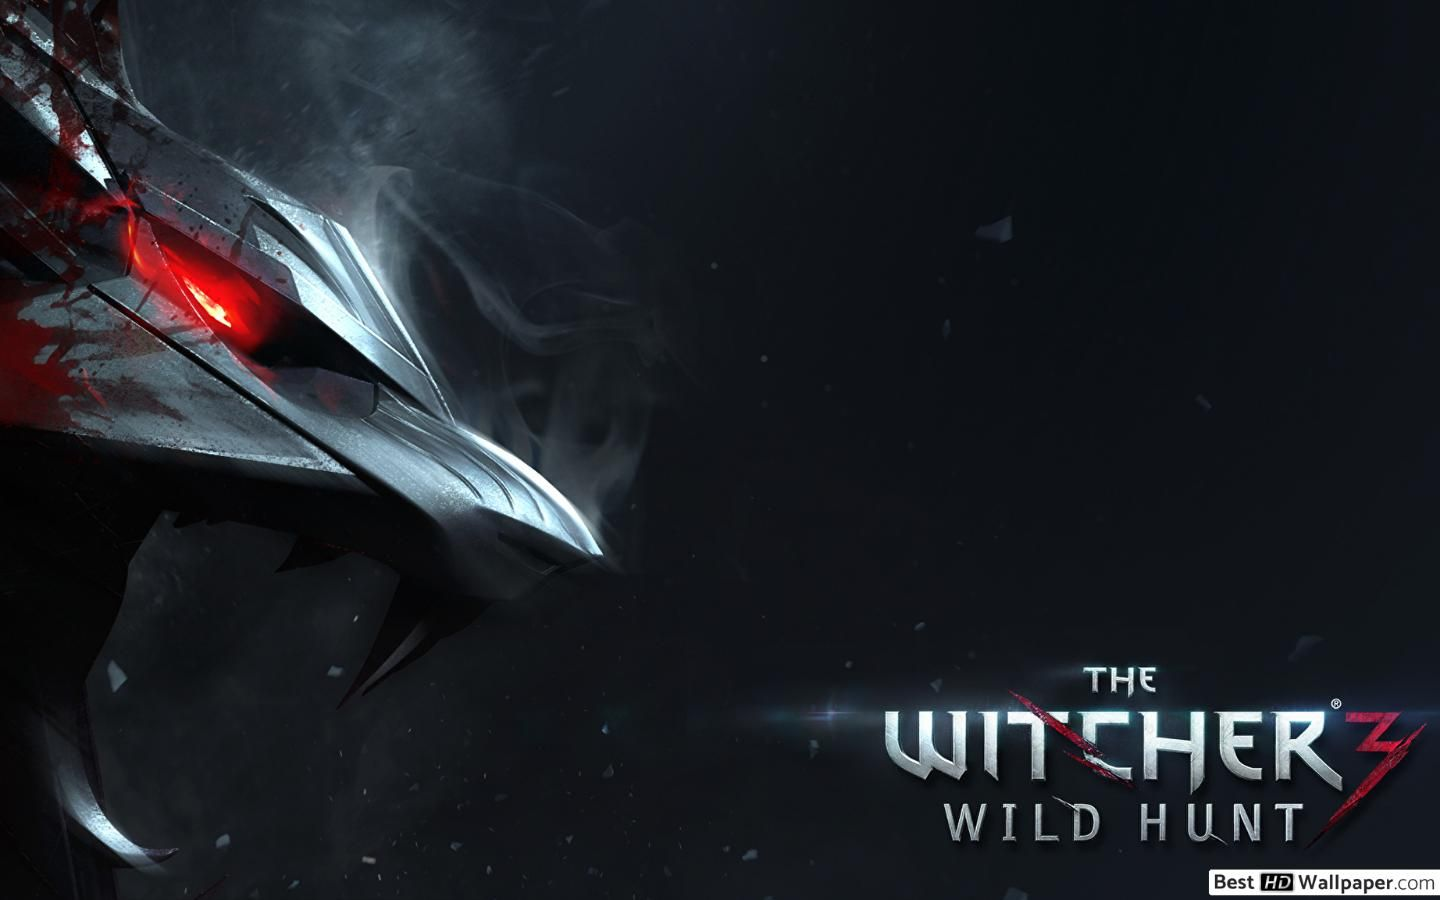 Witcher 3 Logo Wallpapers Full Hd The Witcher Wild Hunt Wild Hunt The Witcher